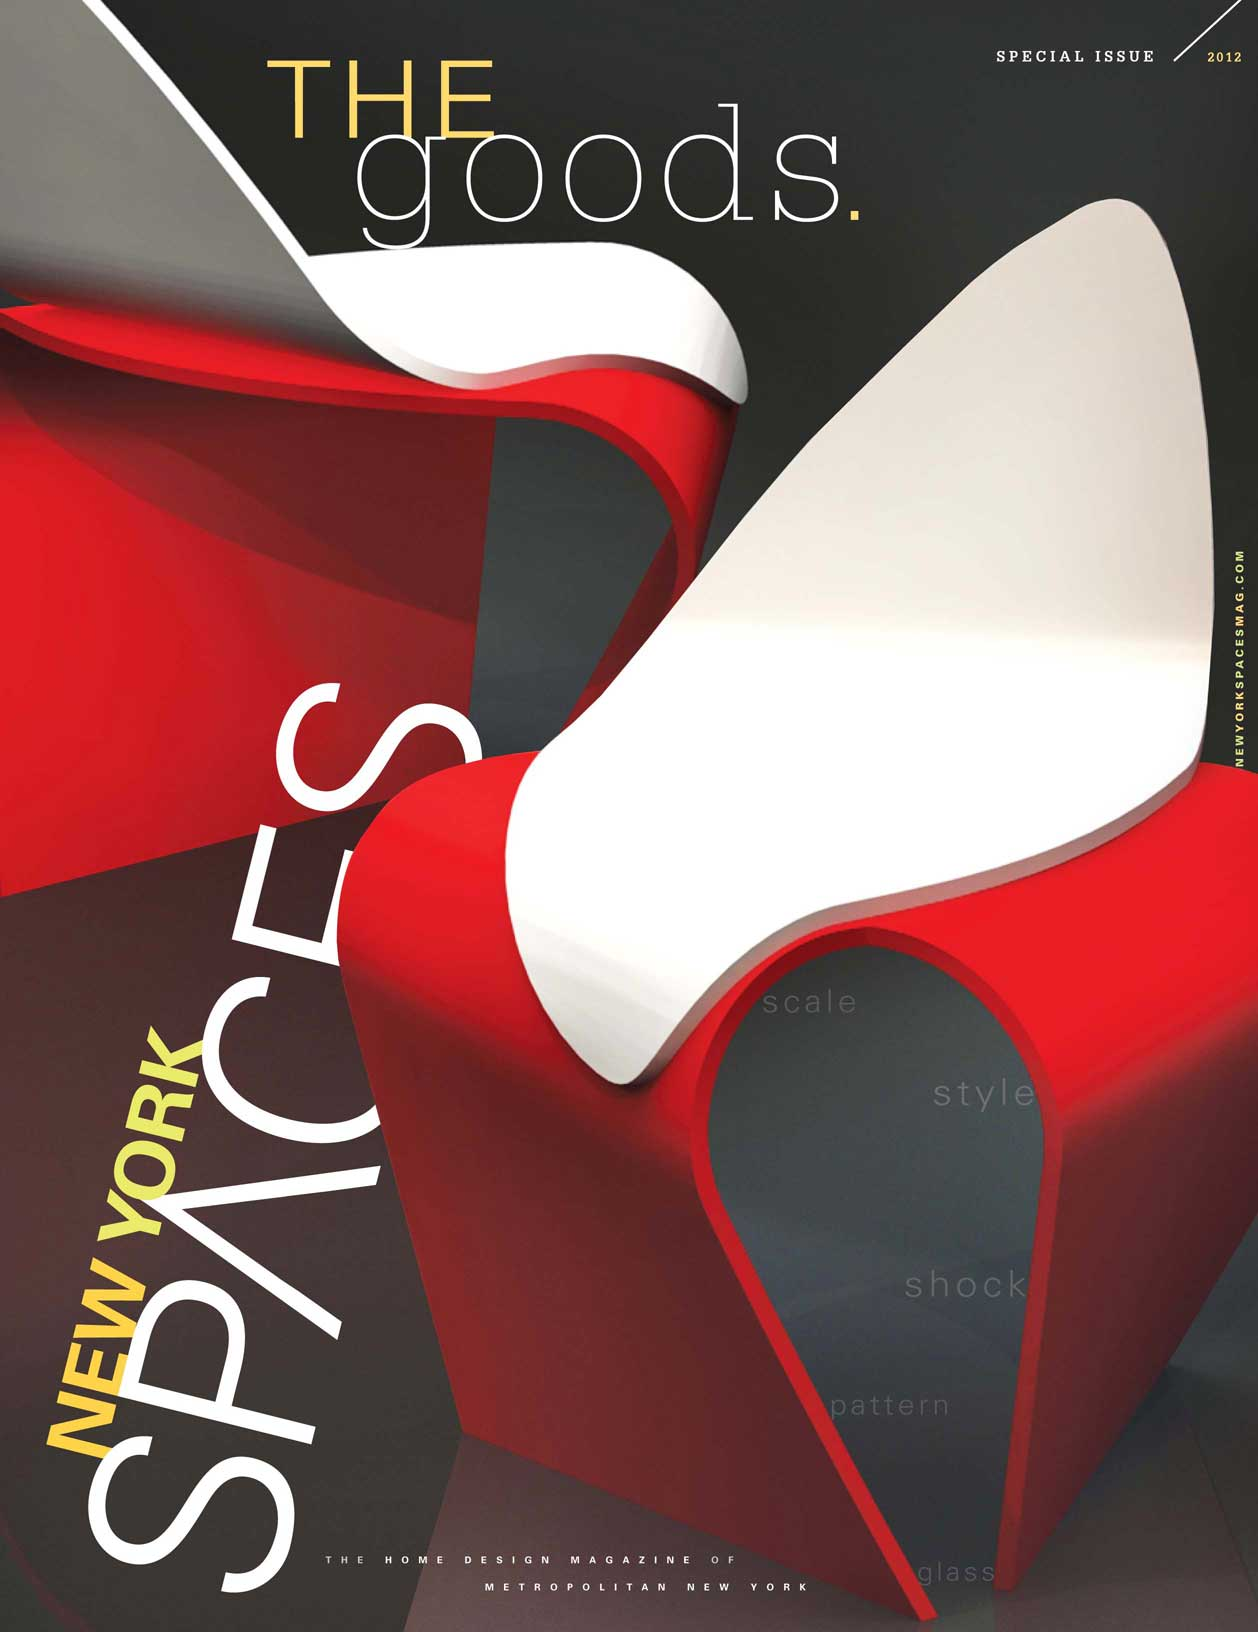 new york spaces goods cover.jpg